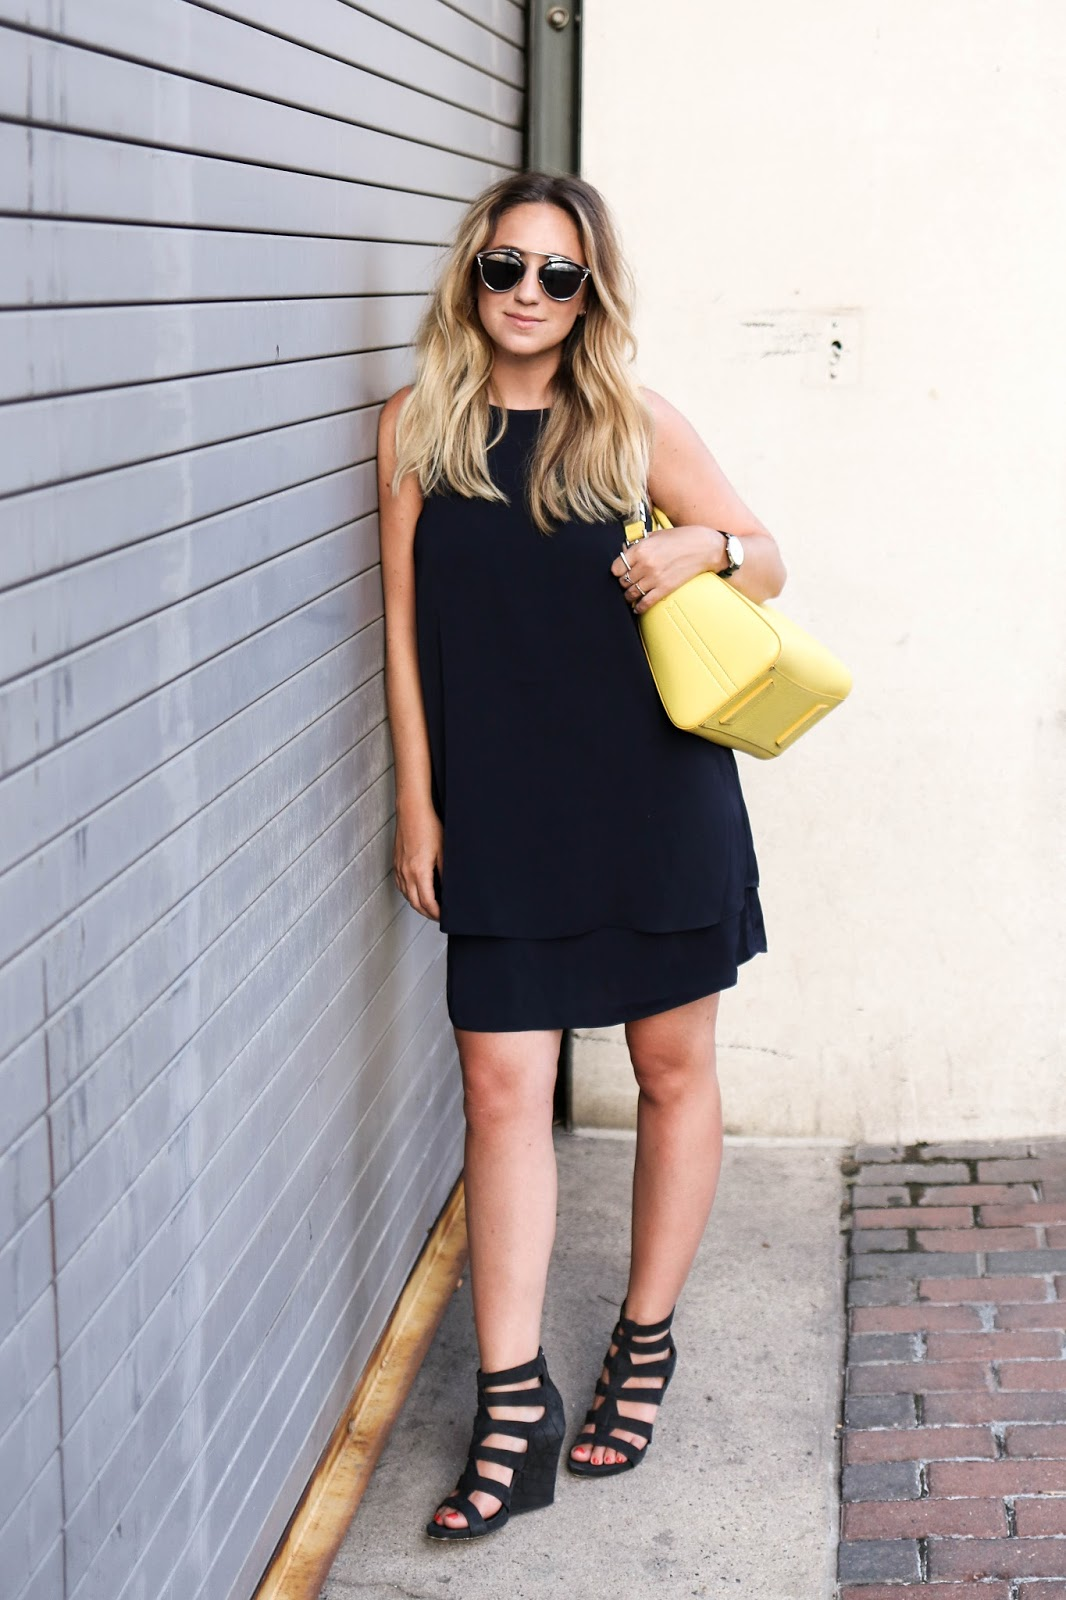 designer, tjmaxx, givenchy, yellow, antigona, bag, sale, discount, dress, sigerson, heels, strappy, gladiator, dc, blog, outfit, style, dior, so real, sunglasses